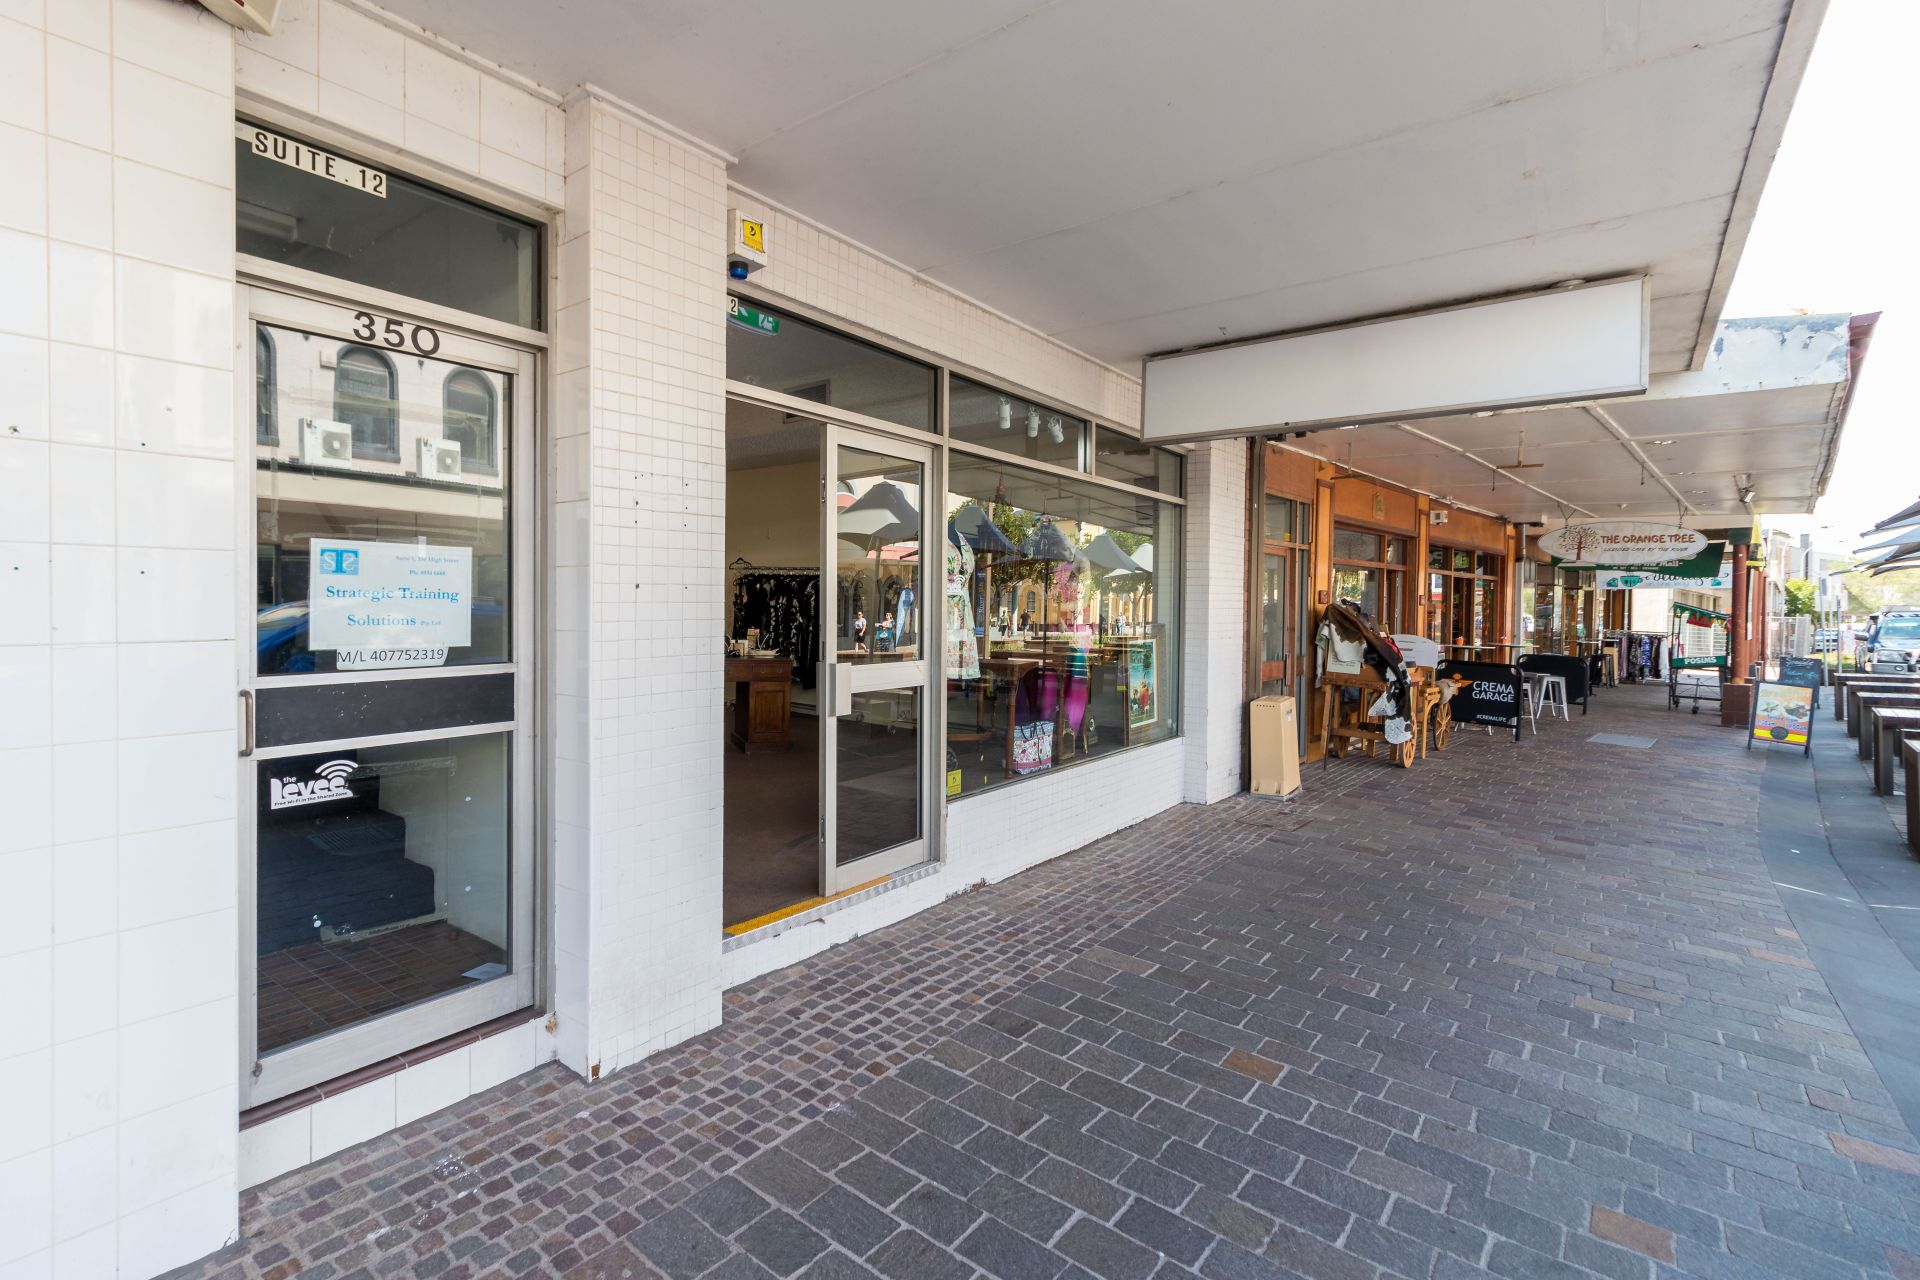 Located in the Heart of Maitland CBD